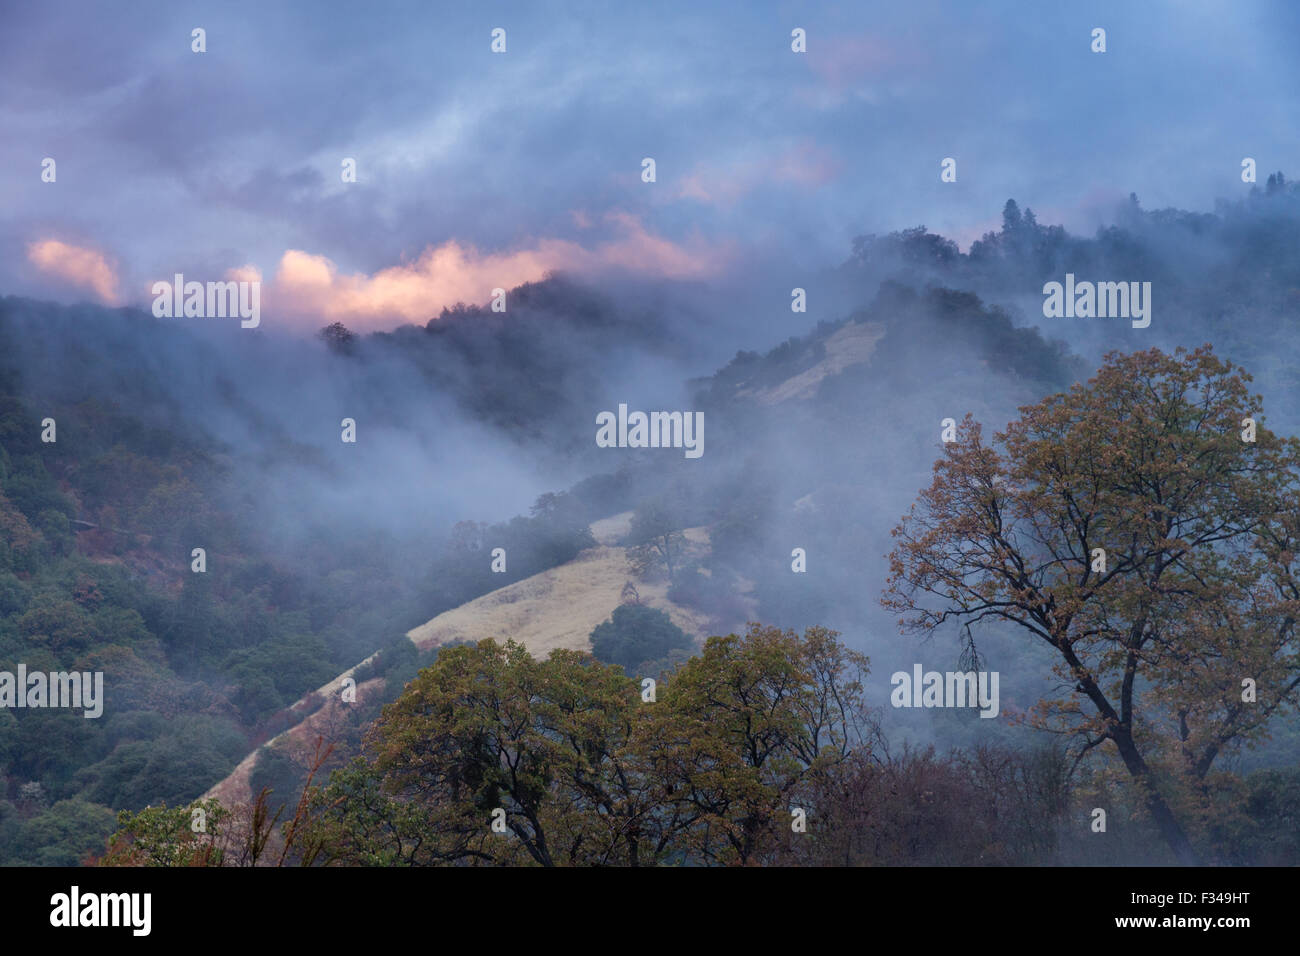 mist after a rain shower in the Kaweah Valley, Sequoia National Park, California, USA - Stock Image